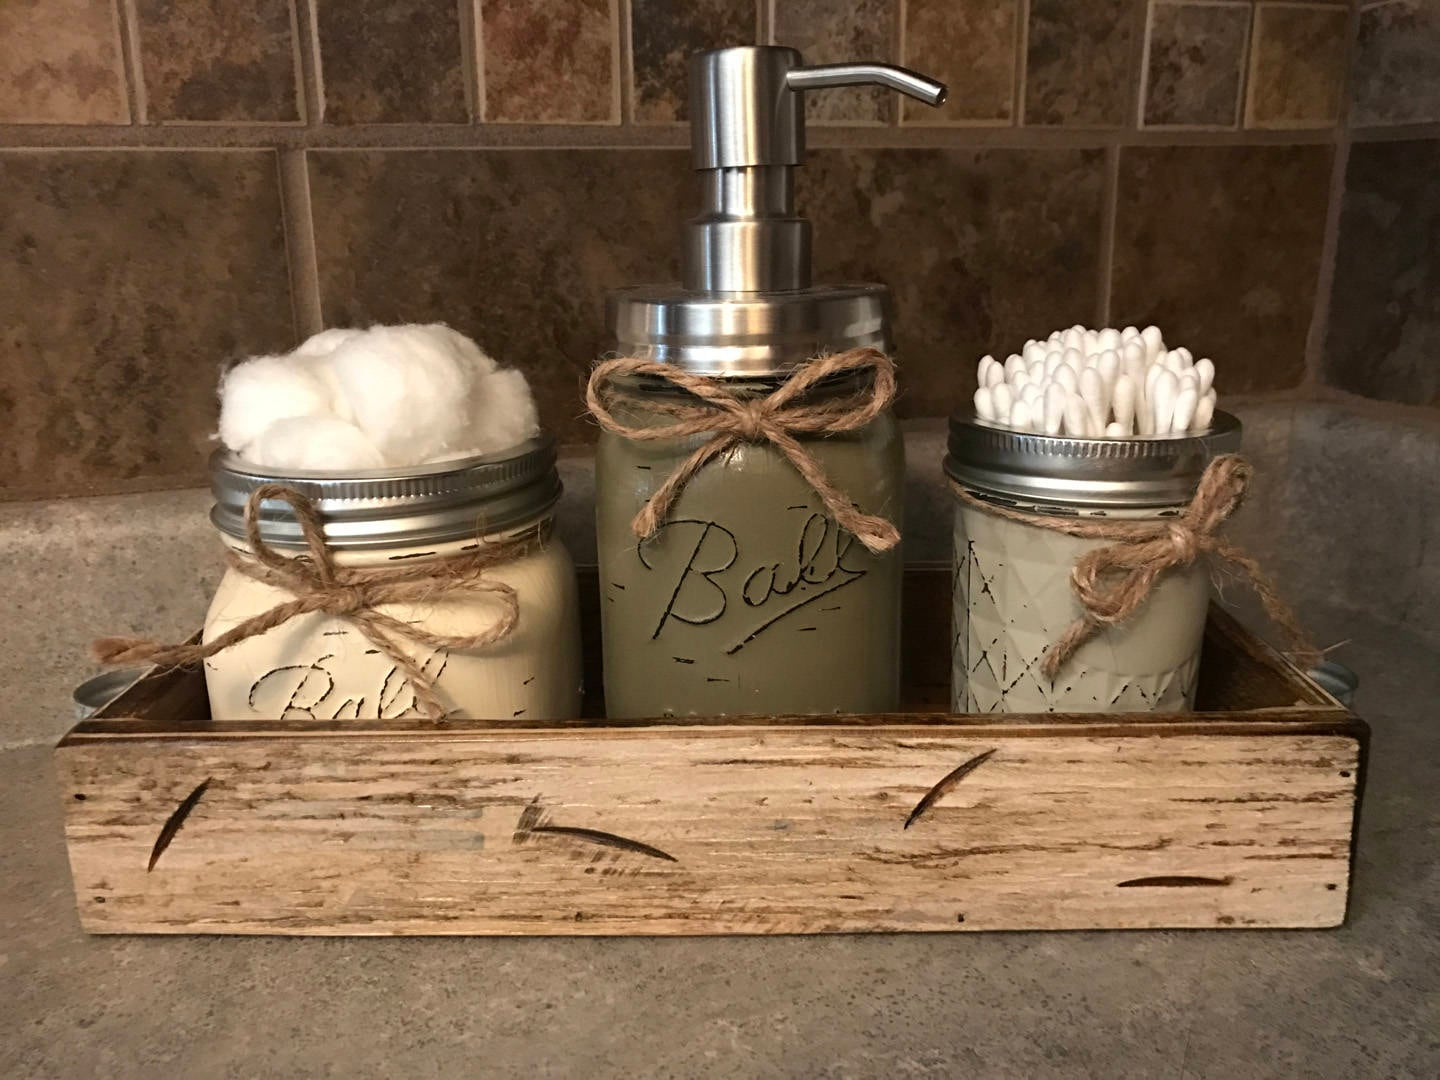 MASON Jar Bathroom SET In Antique White TRAY, Cotton Ball Holder, Soap  Dispenser, Mini Q Tip Jars Painted Distressed Counter Decor Kitchen